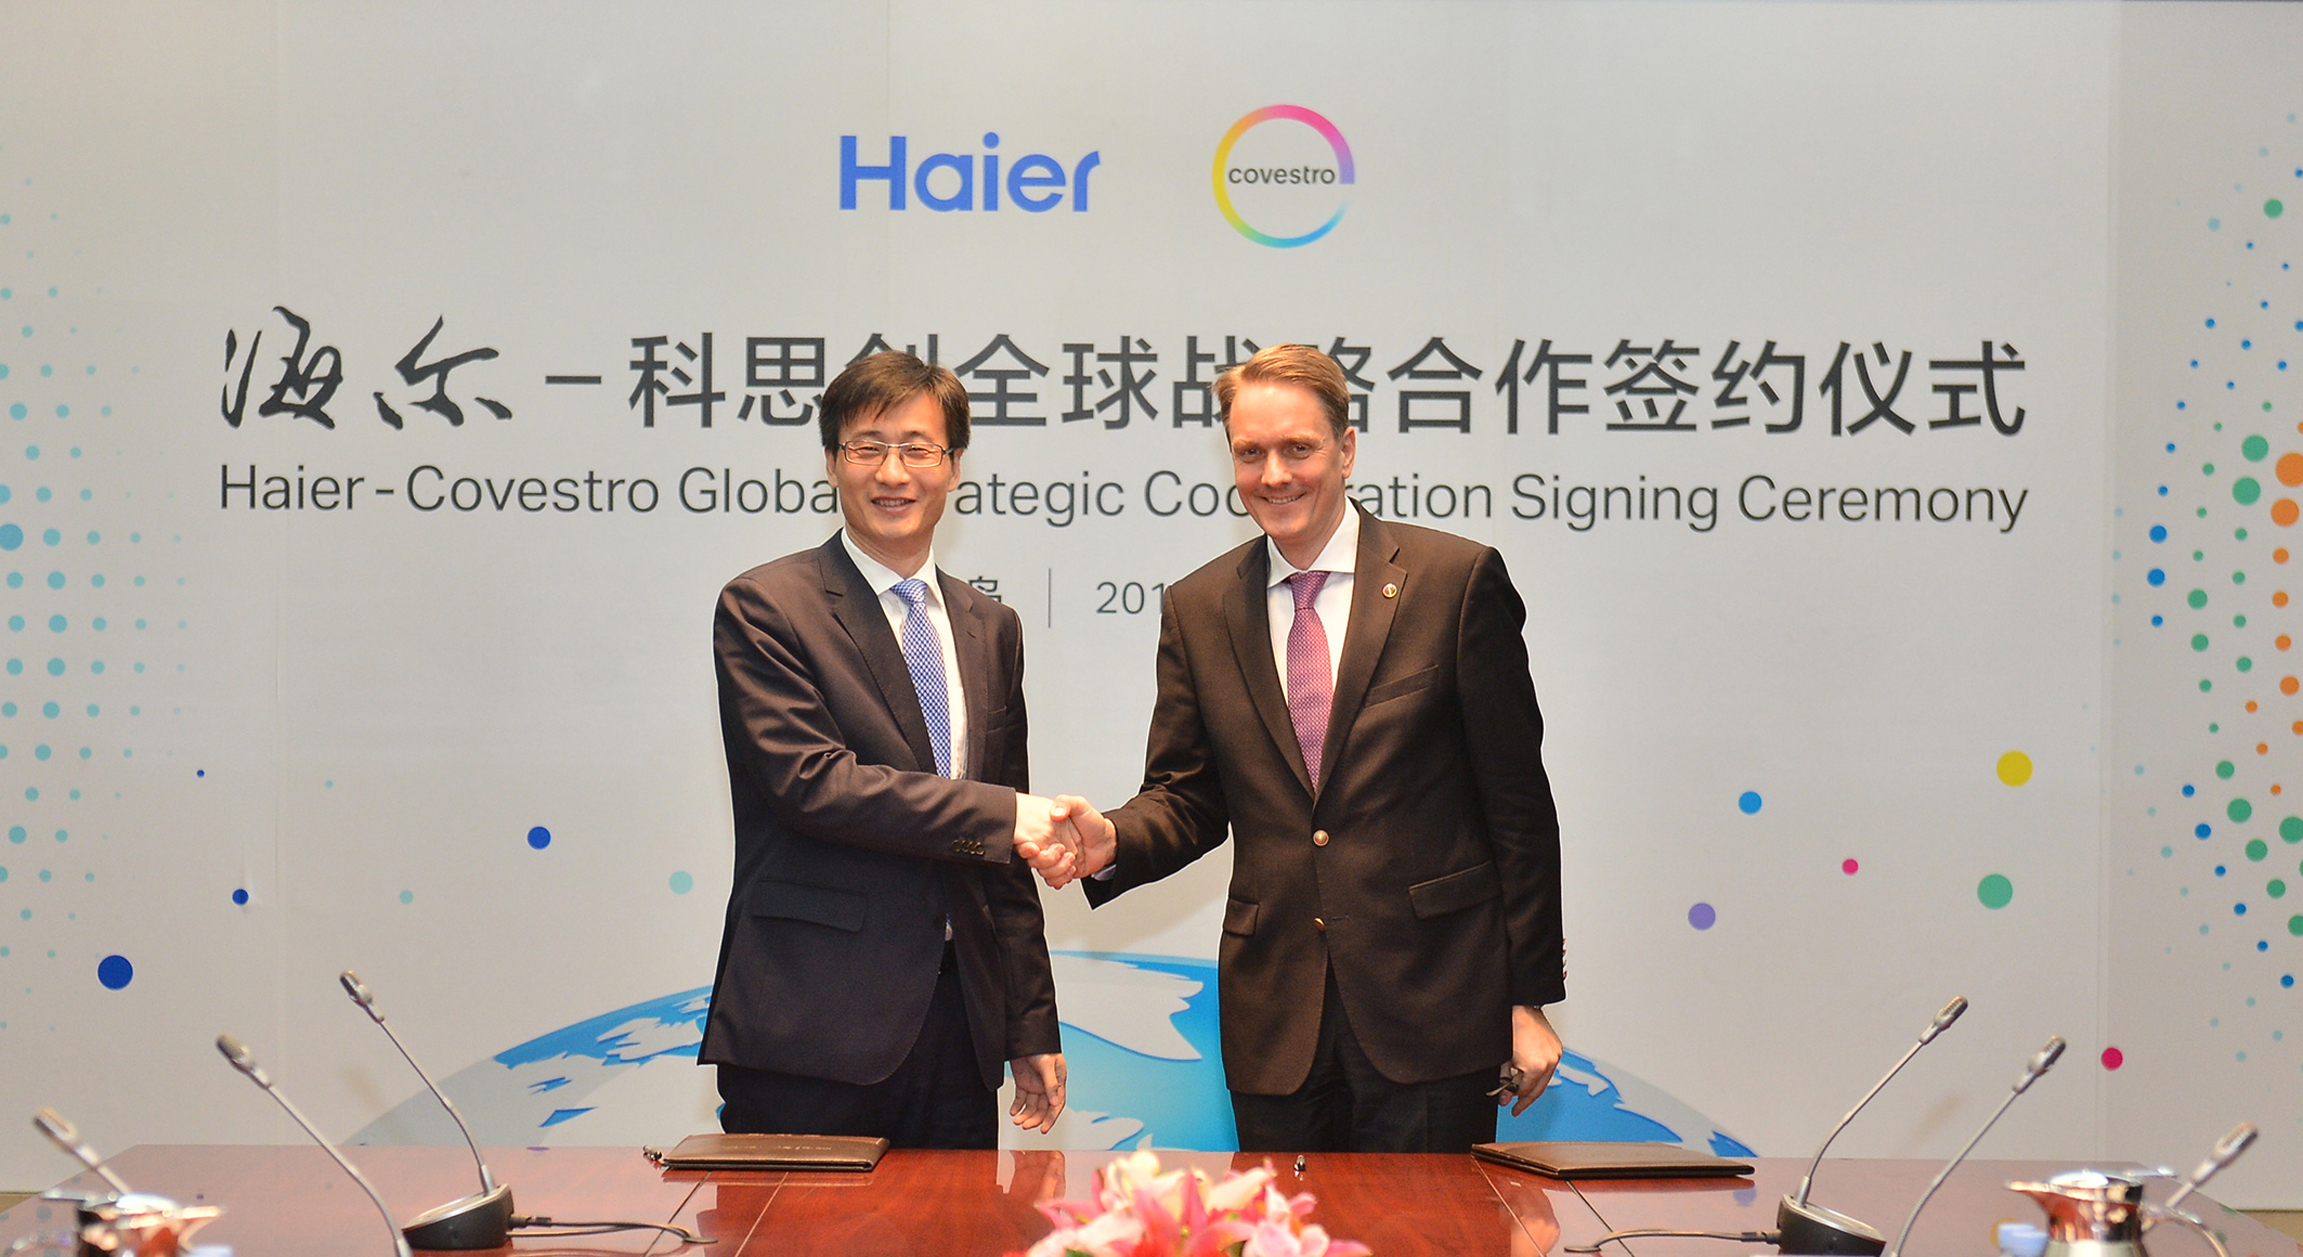 Wu Yong, General Manager China Refrigeration Industry of Haier Group (left), and Daniel Meyer, Global Head of the Polyurethanes Segment at Covestro, at the signing ceremony for the new cooperation agreement. (Source: Covestro)